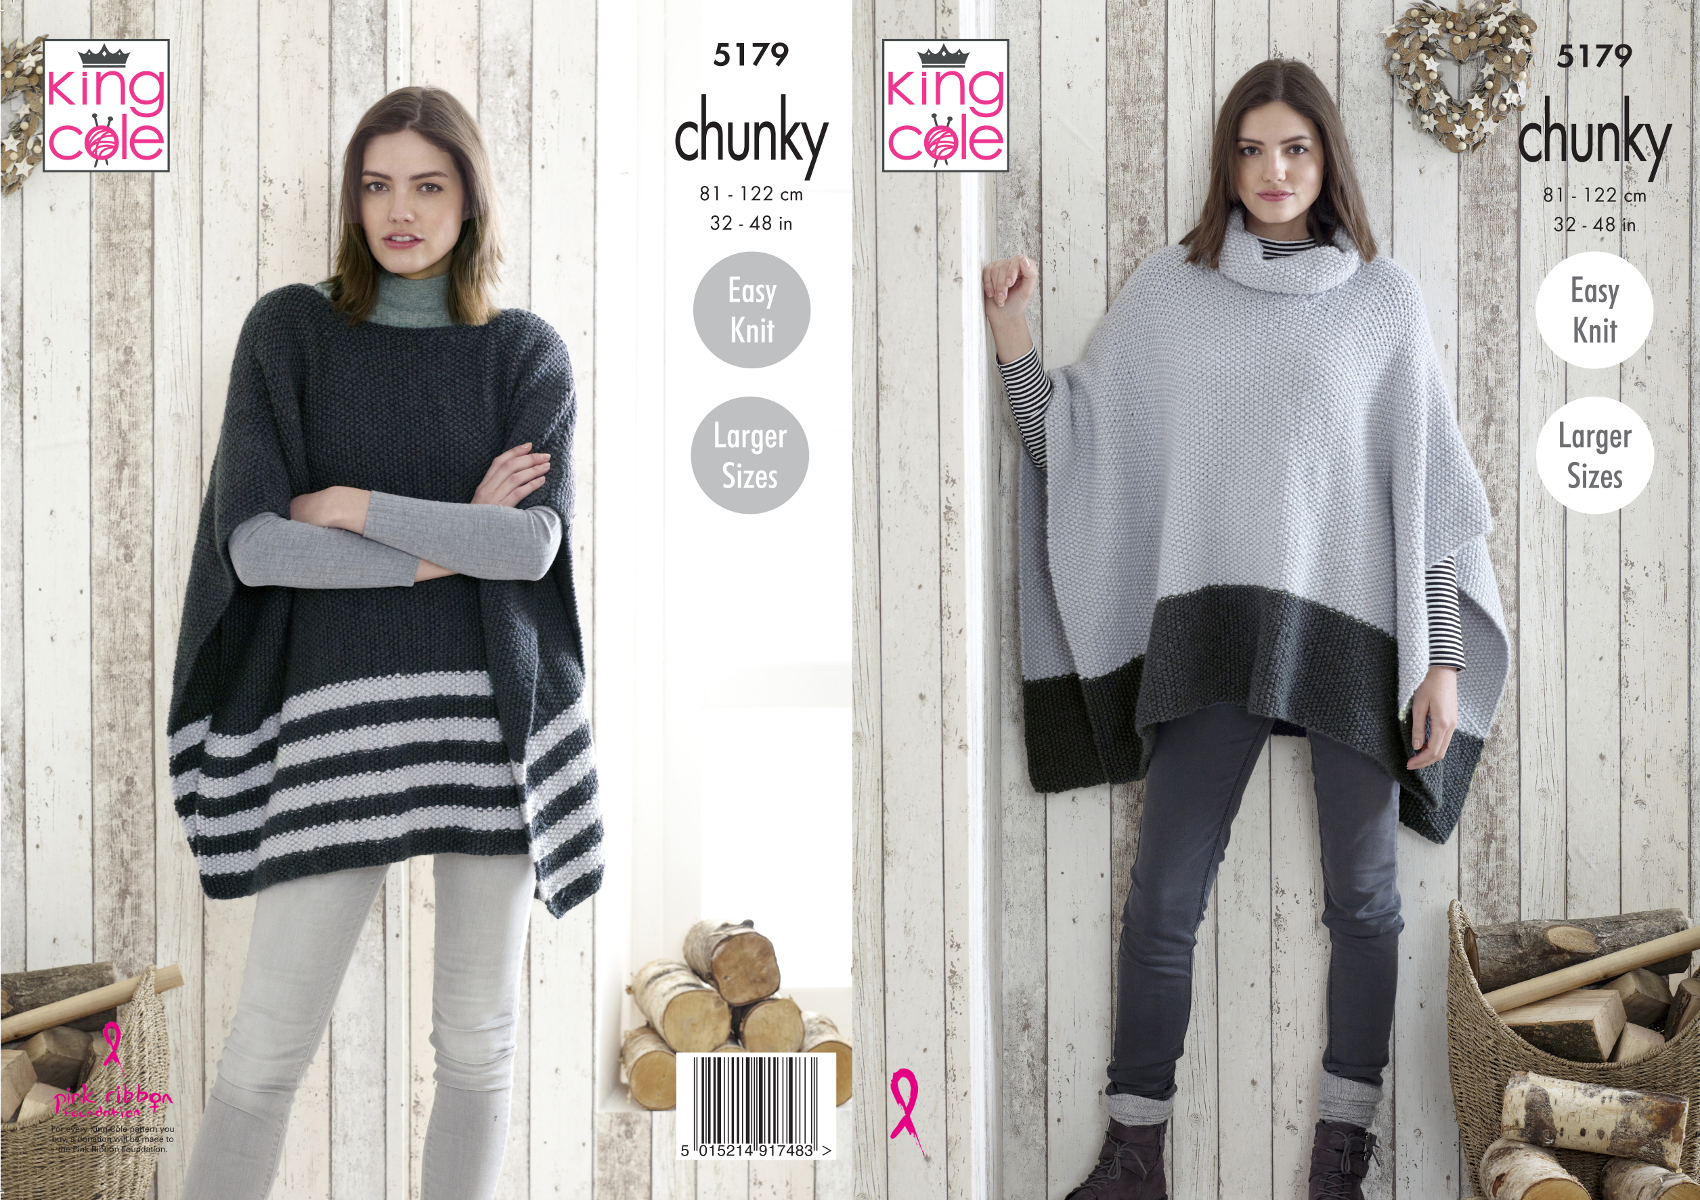 Details about King Cole Ladies Chunky Knitting Pattern Easy Knit Boat or  Cowl Neck Poncho 5179